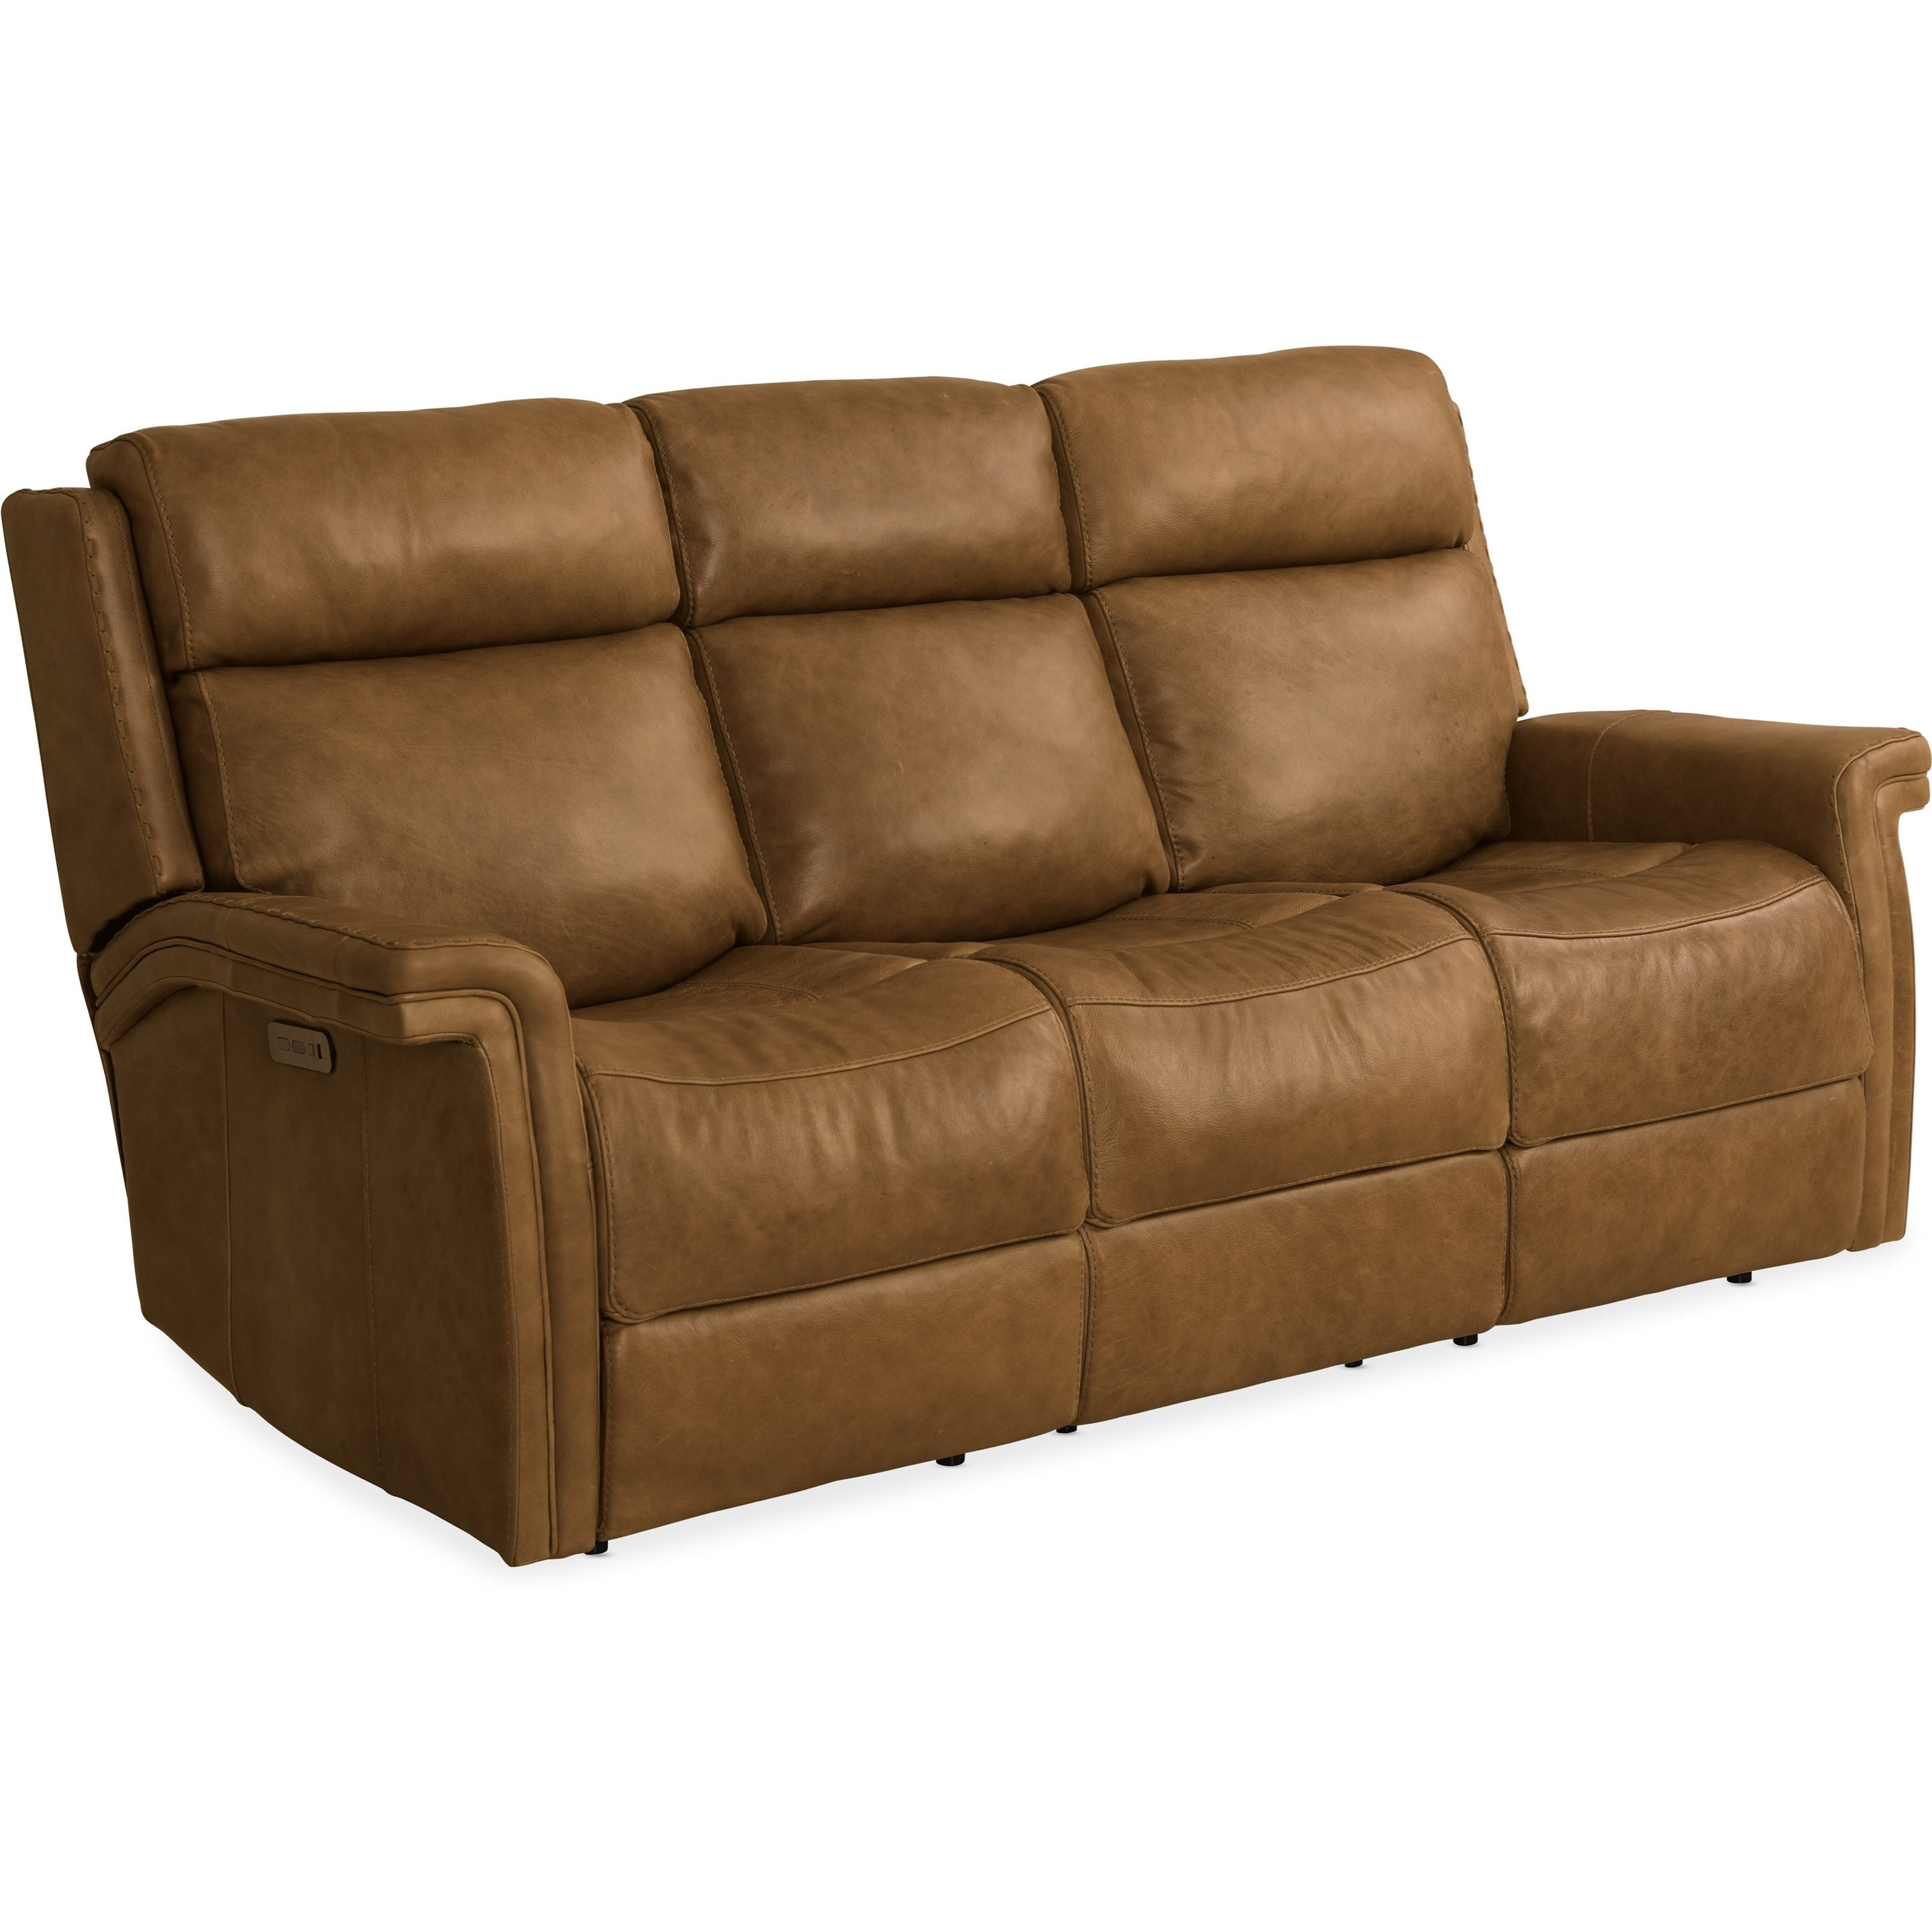 Poise Motion Sofa by Hooker Furniture at Miller Waldrop Furniture and Decor